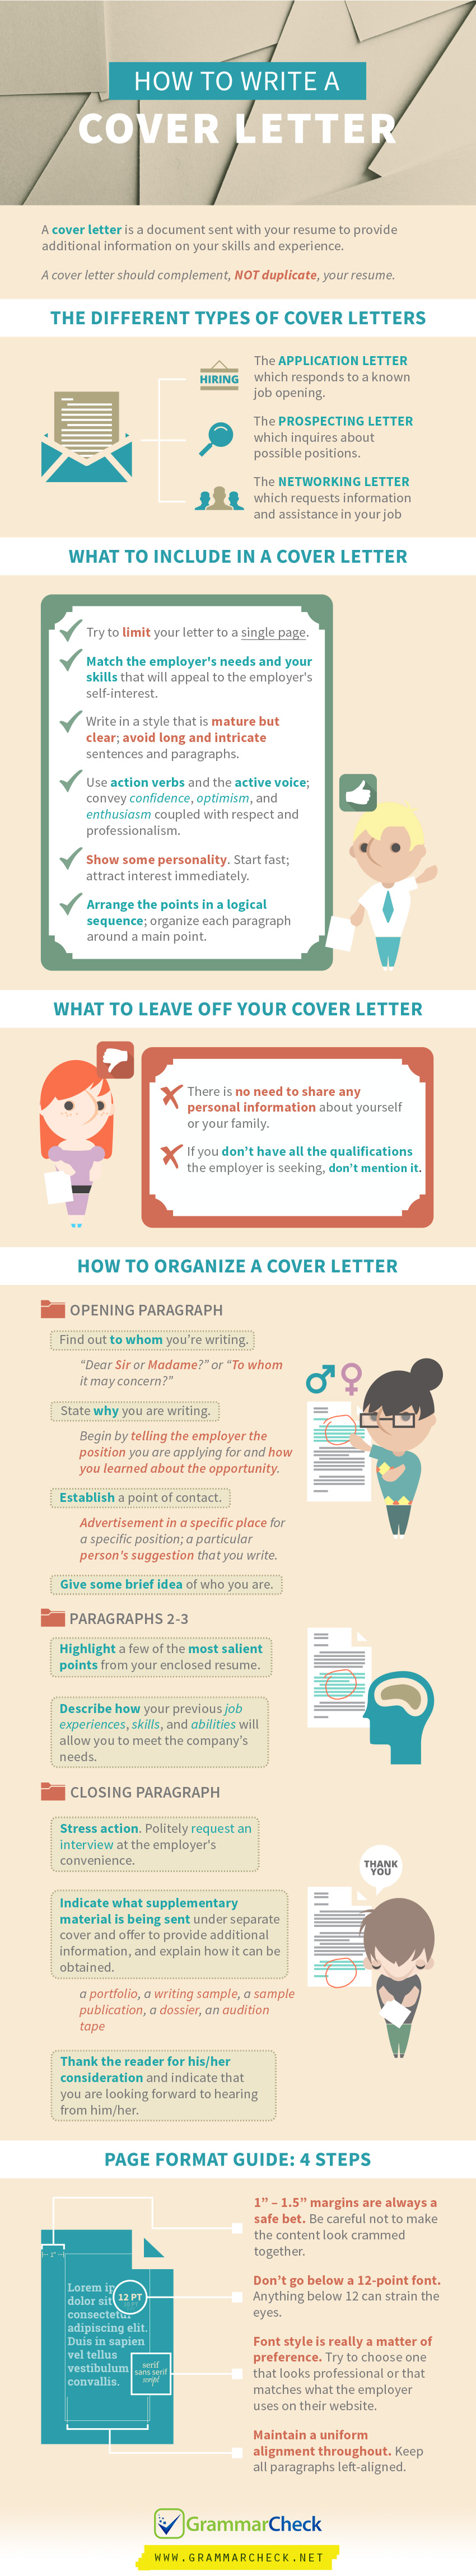 howto write a cover letter - how to write a cover letter step by step writers write